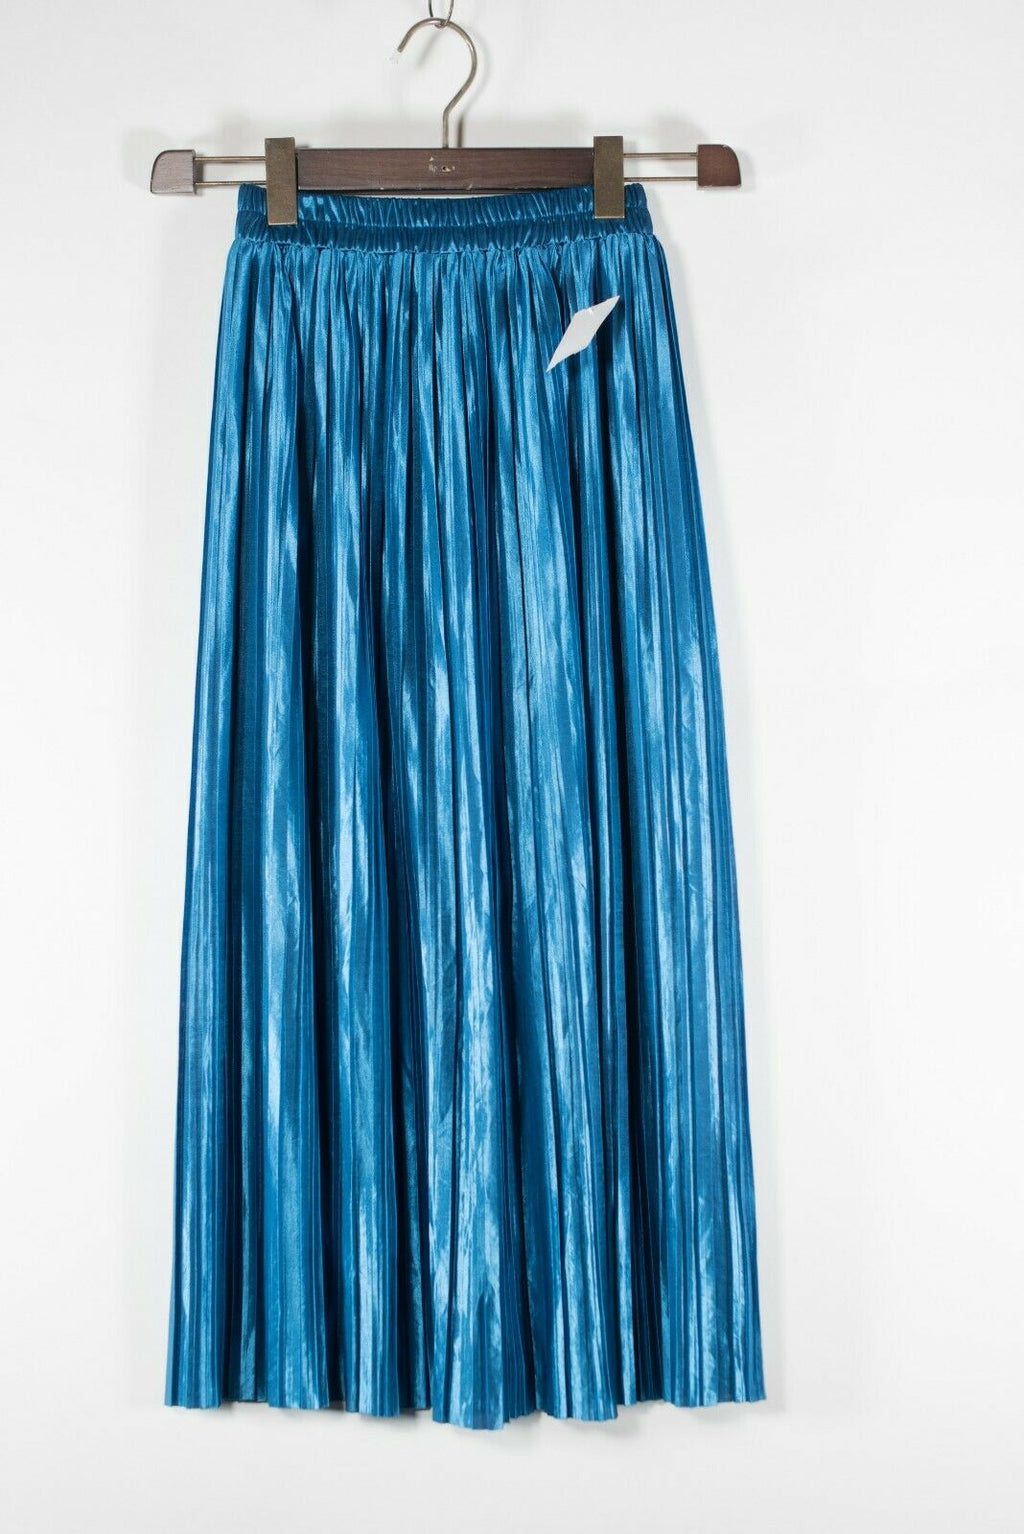 Abercrombie & Fitch Womens Medium Blue Skirt Metallic Pleated Elastic Waist Midi